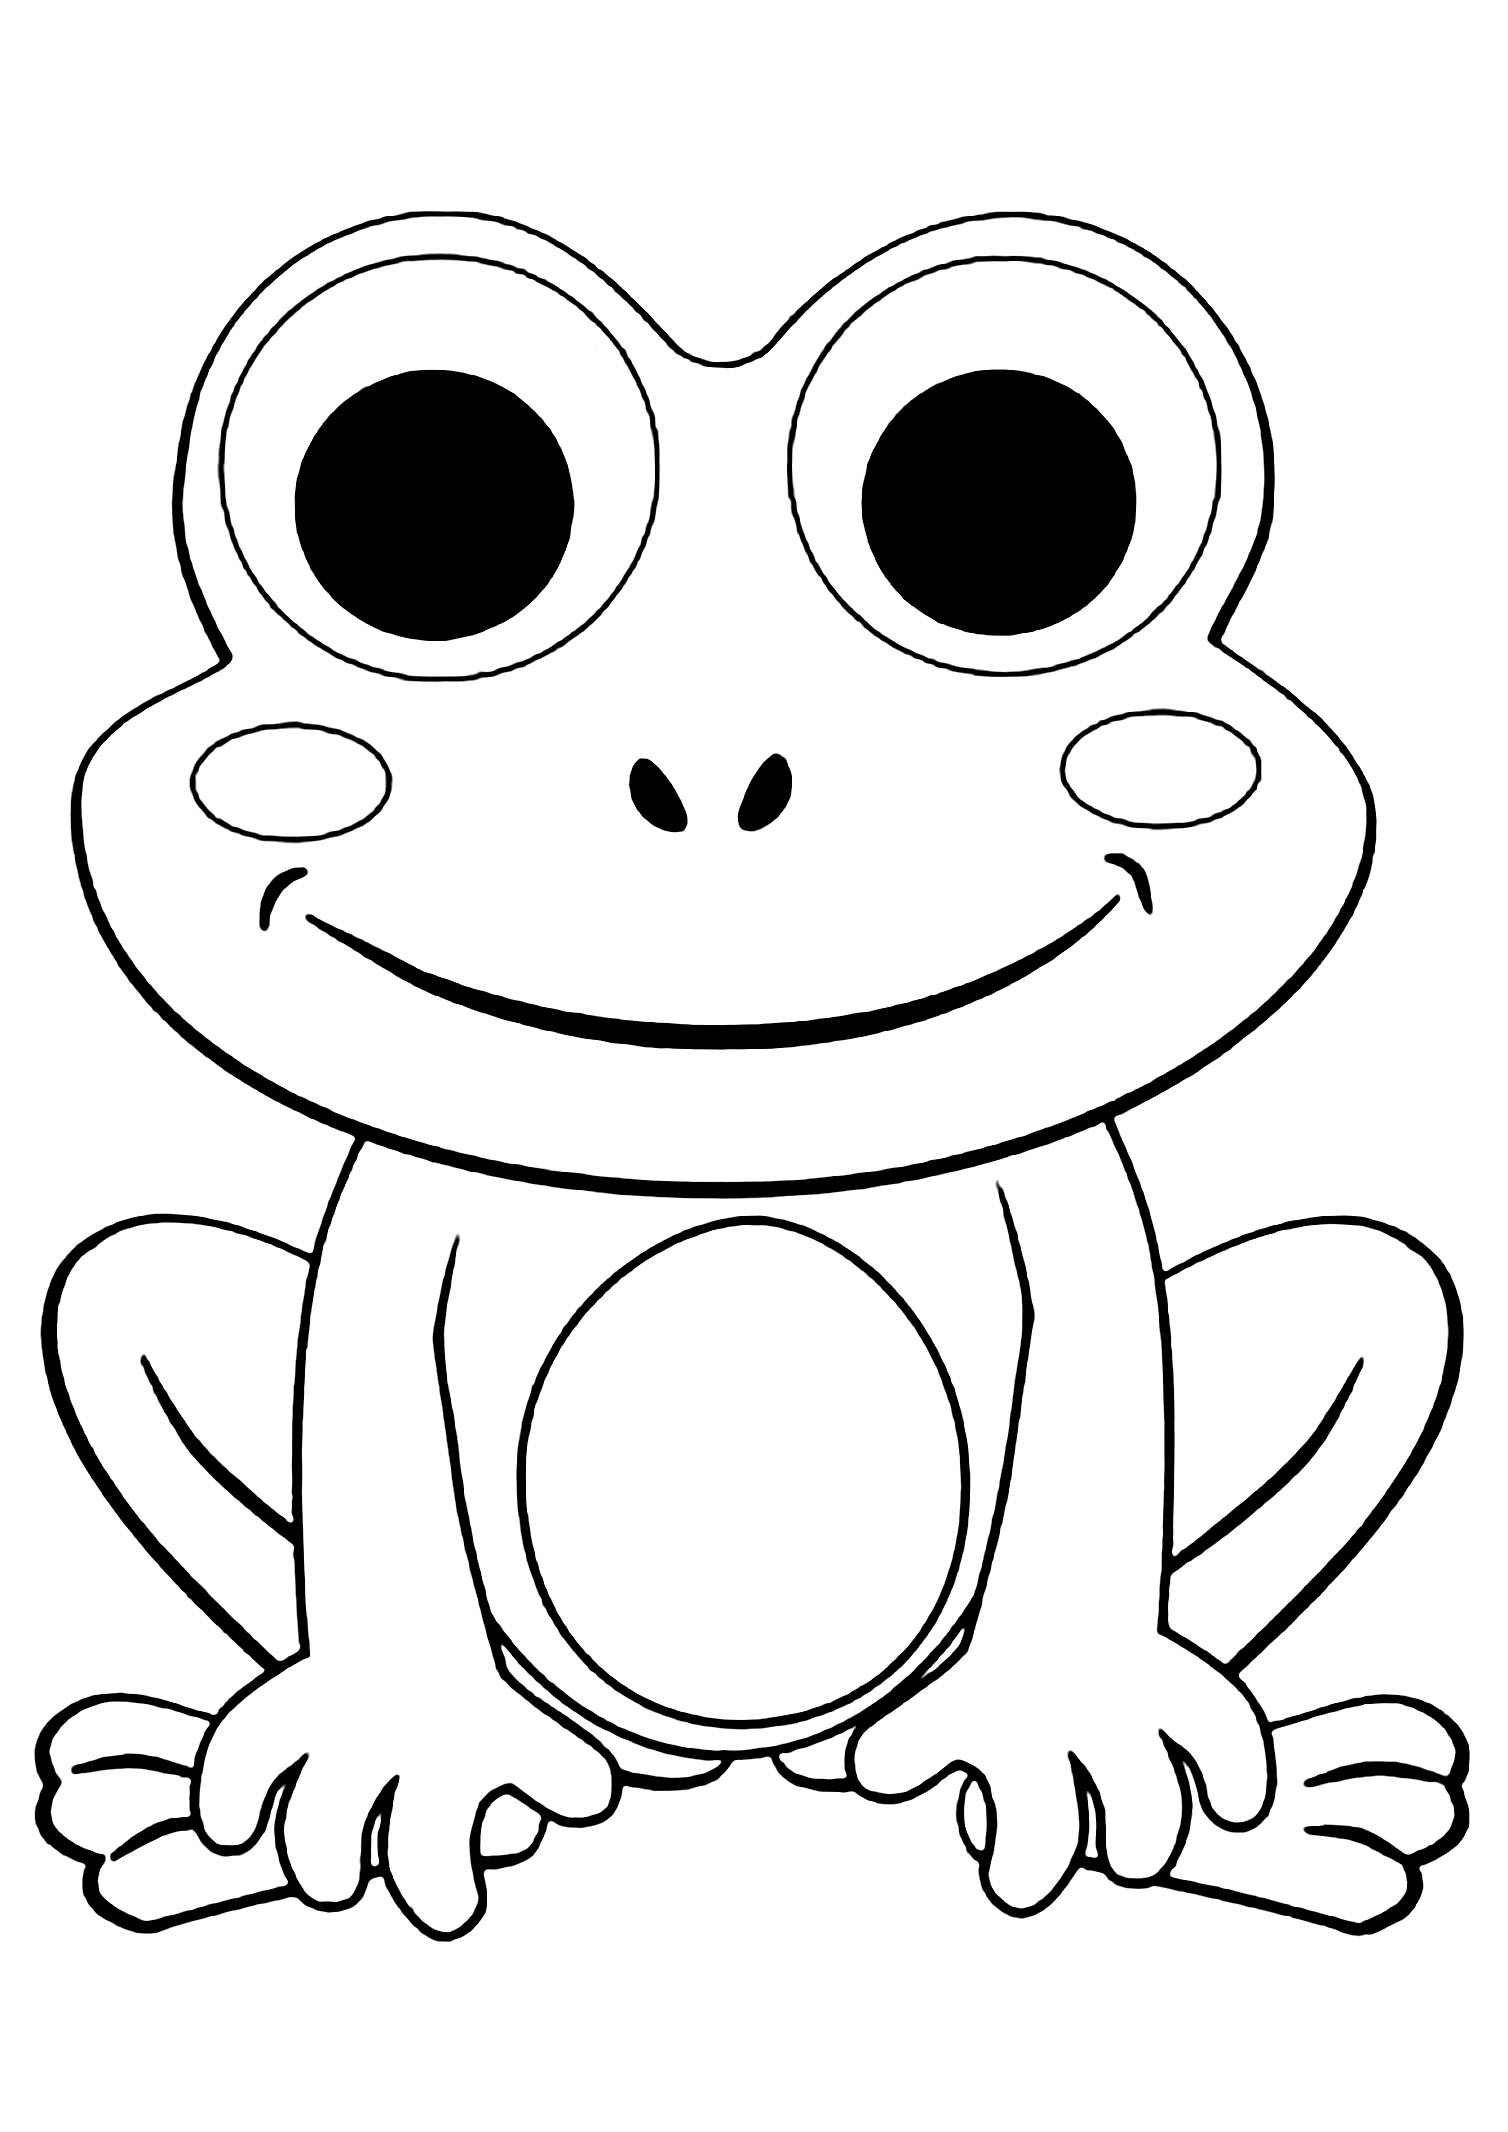 coloring images of frog print download frog coloring pages theme for kids images coloring of frog